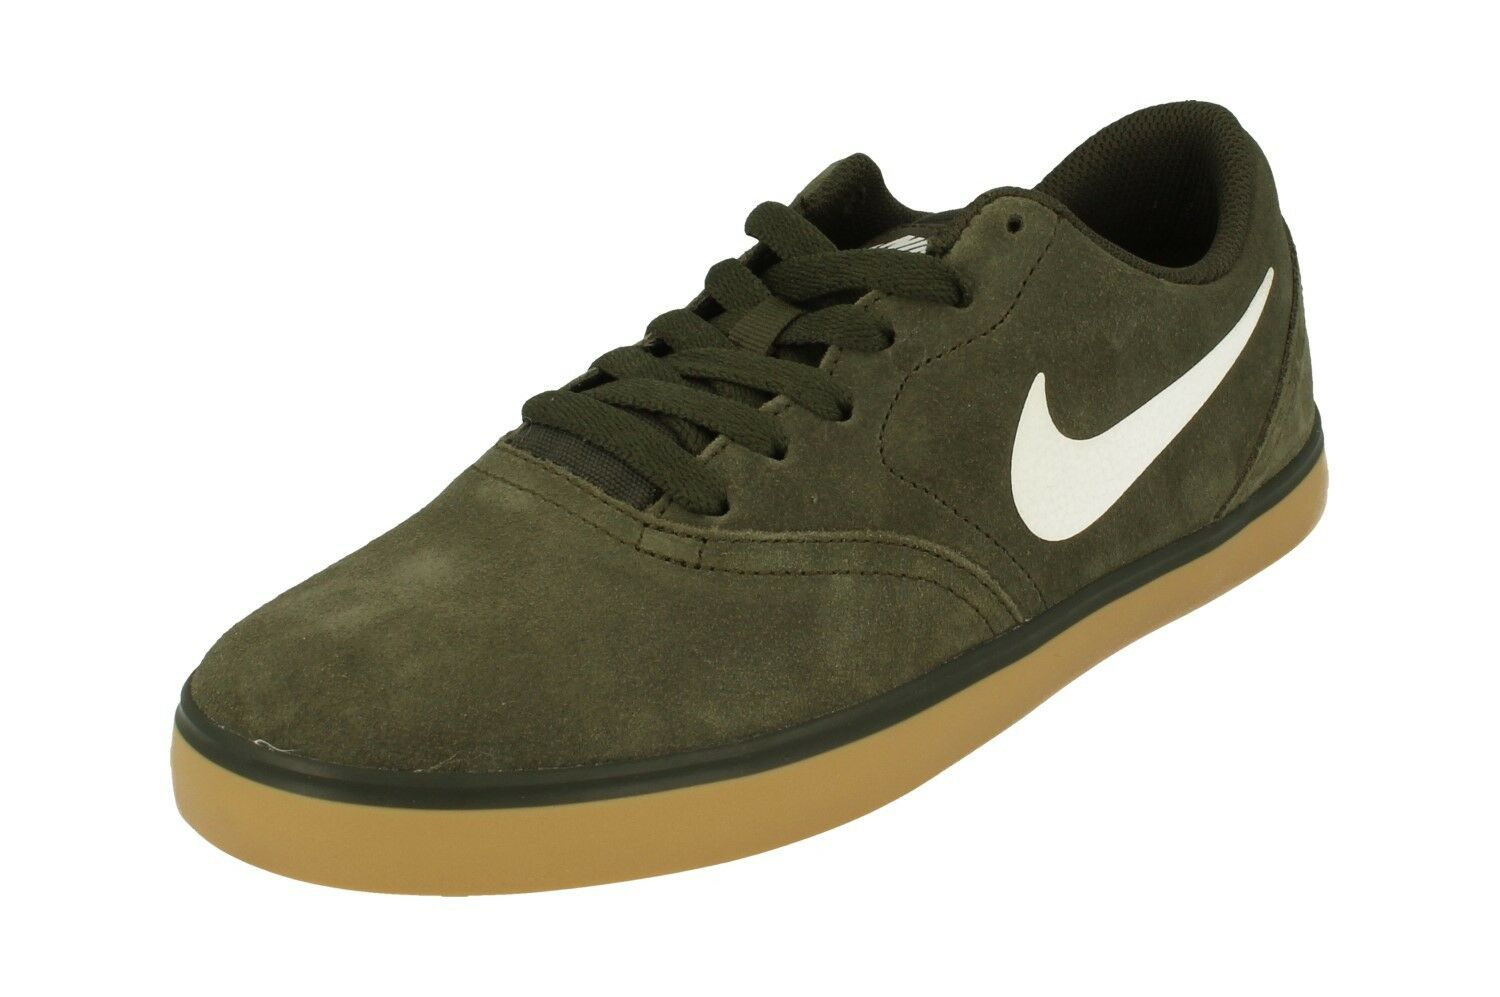 nike sb -   chaussures formateurs 705 265 chaussures chaussures  312 3f7c0c